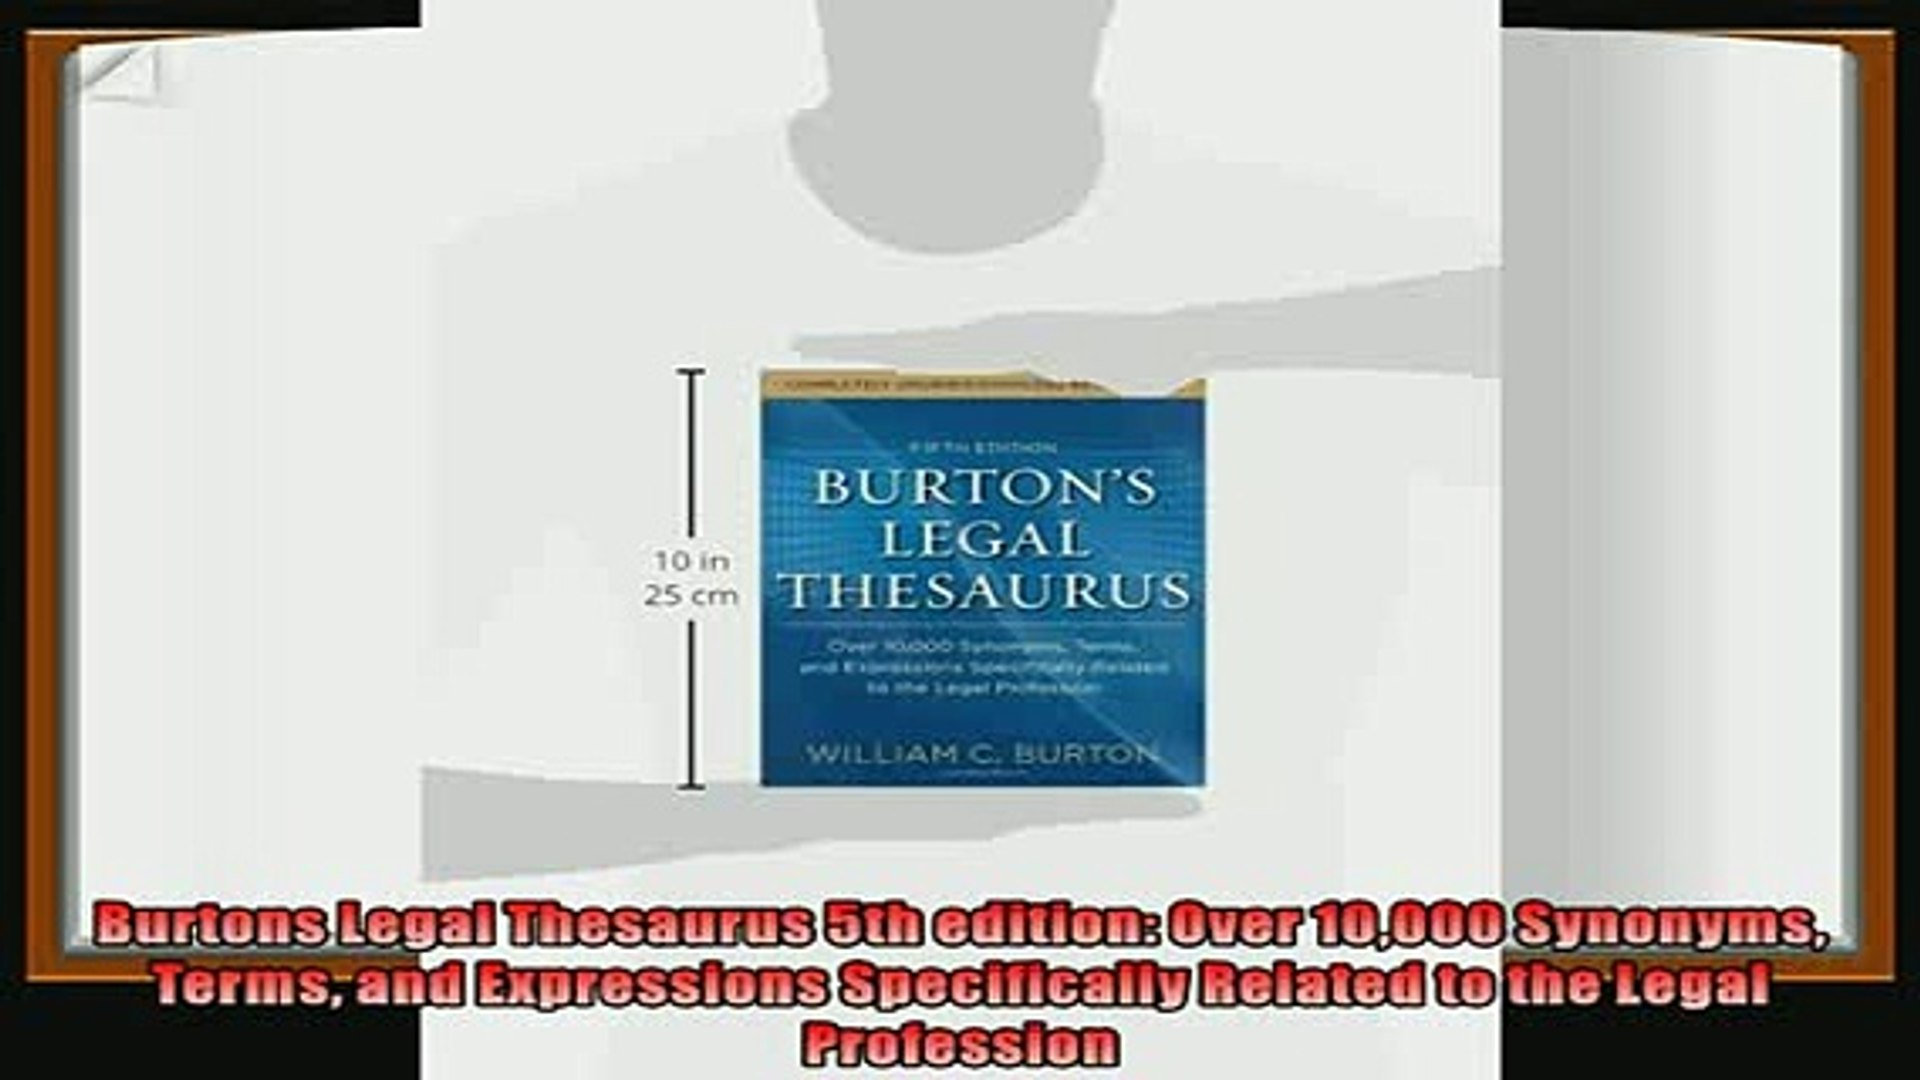 complete  Burtons Legal Thesaurus 5th edition Over 10000 Synonyms Terms and Expressions